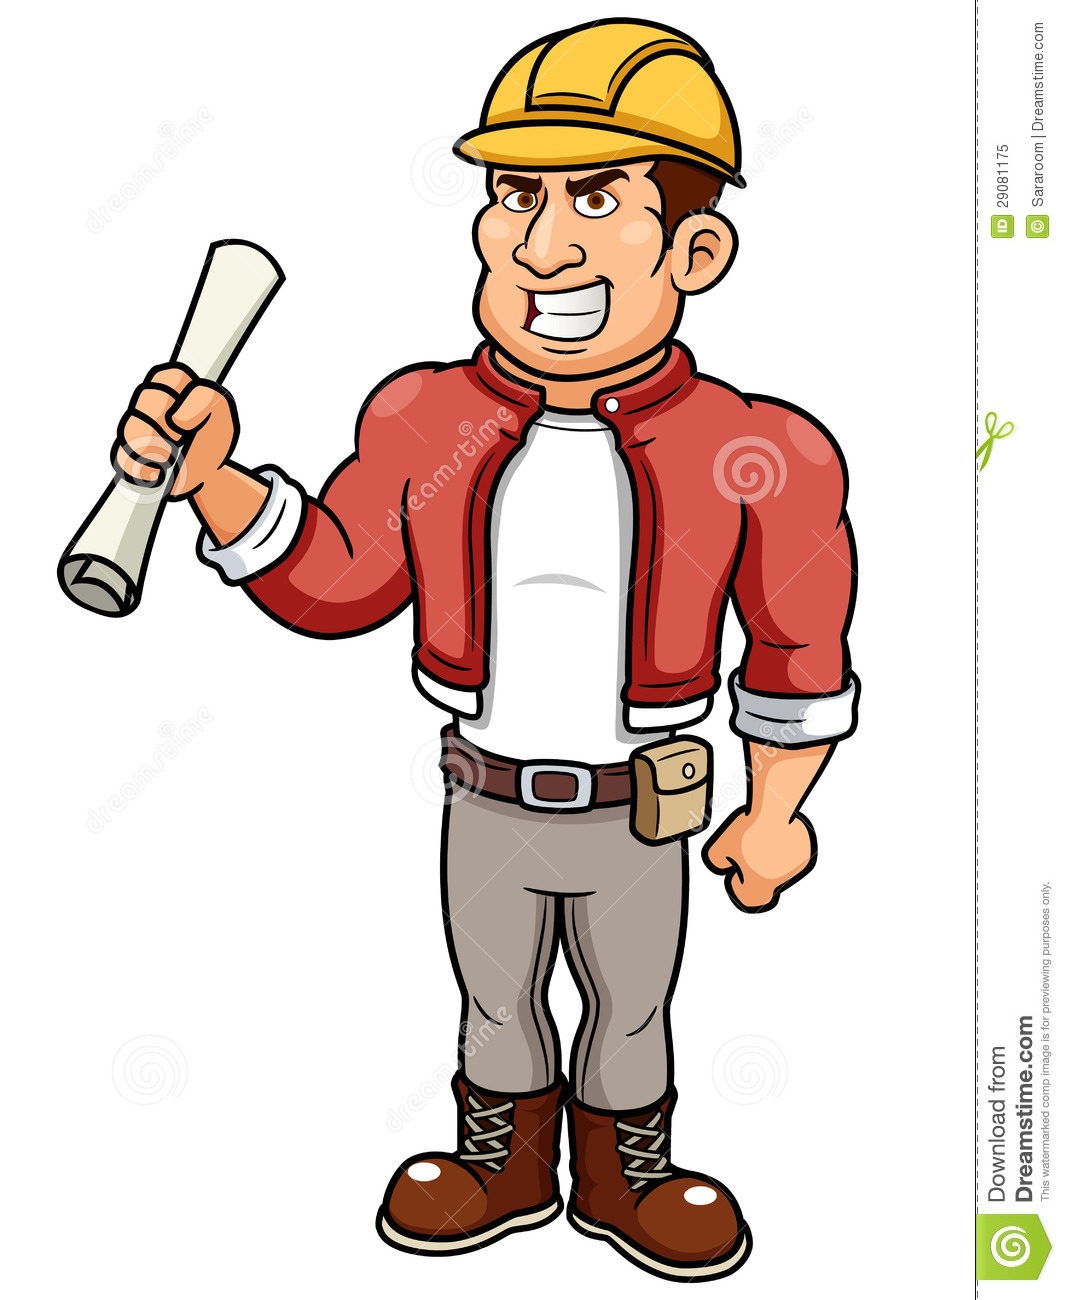 Cartoon Male Architect Royalty Free Stock Photo - Image: 29081175